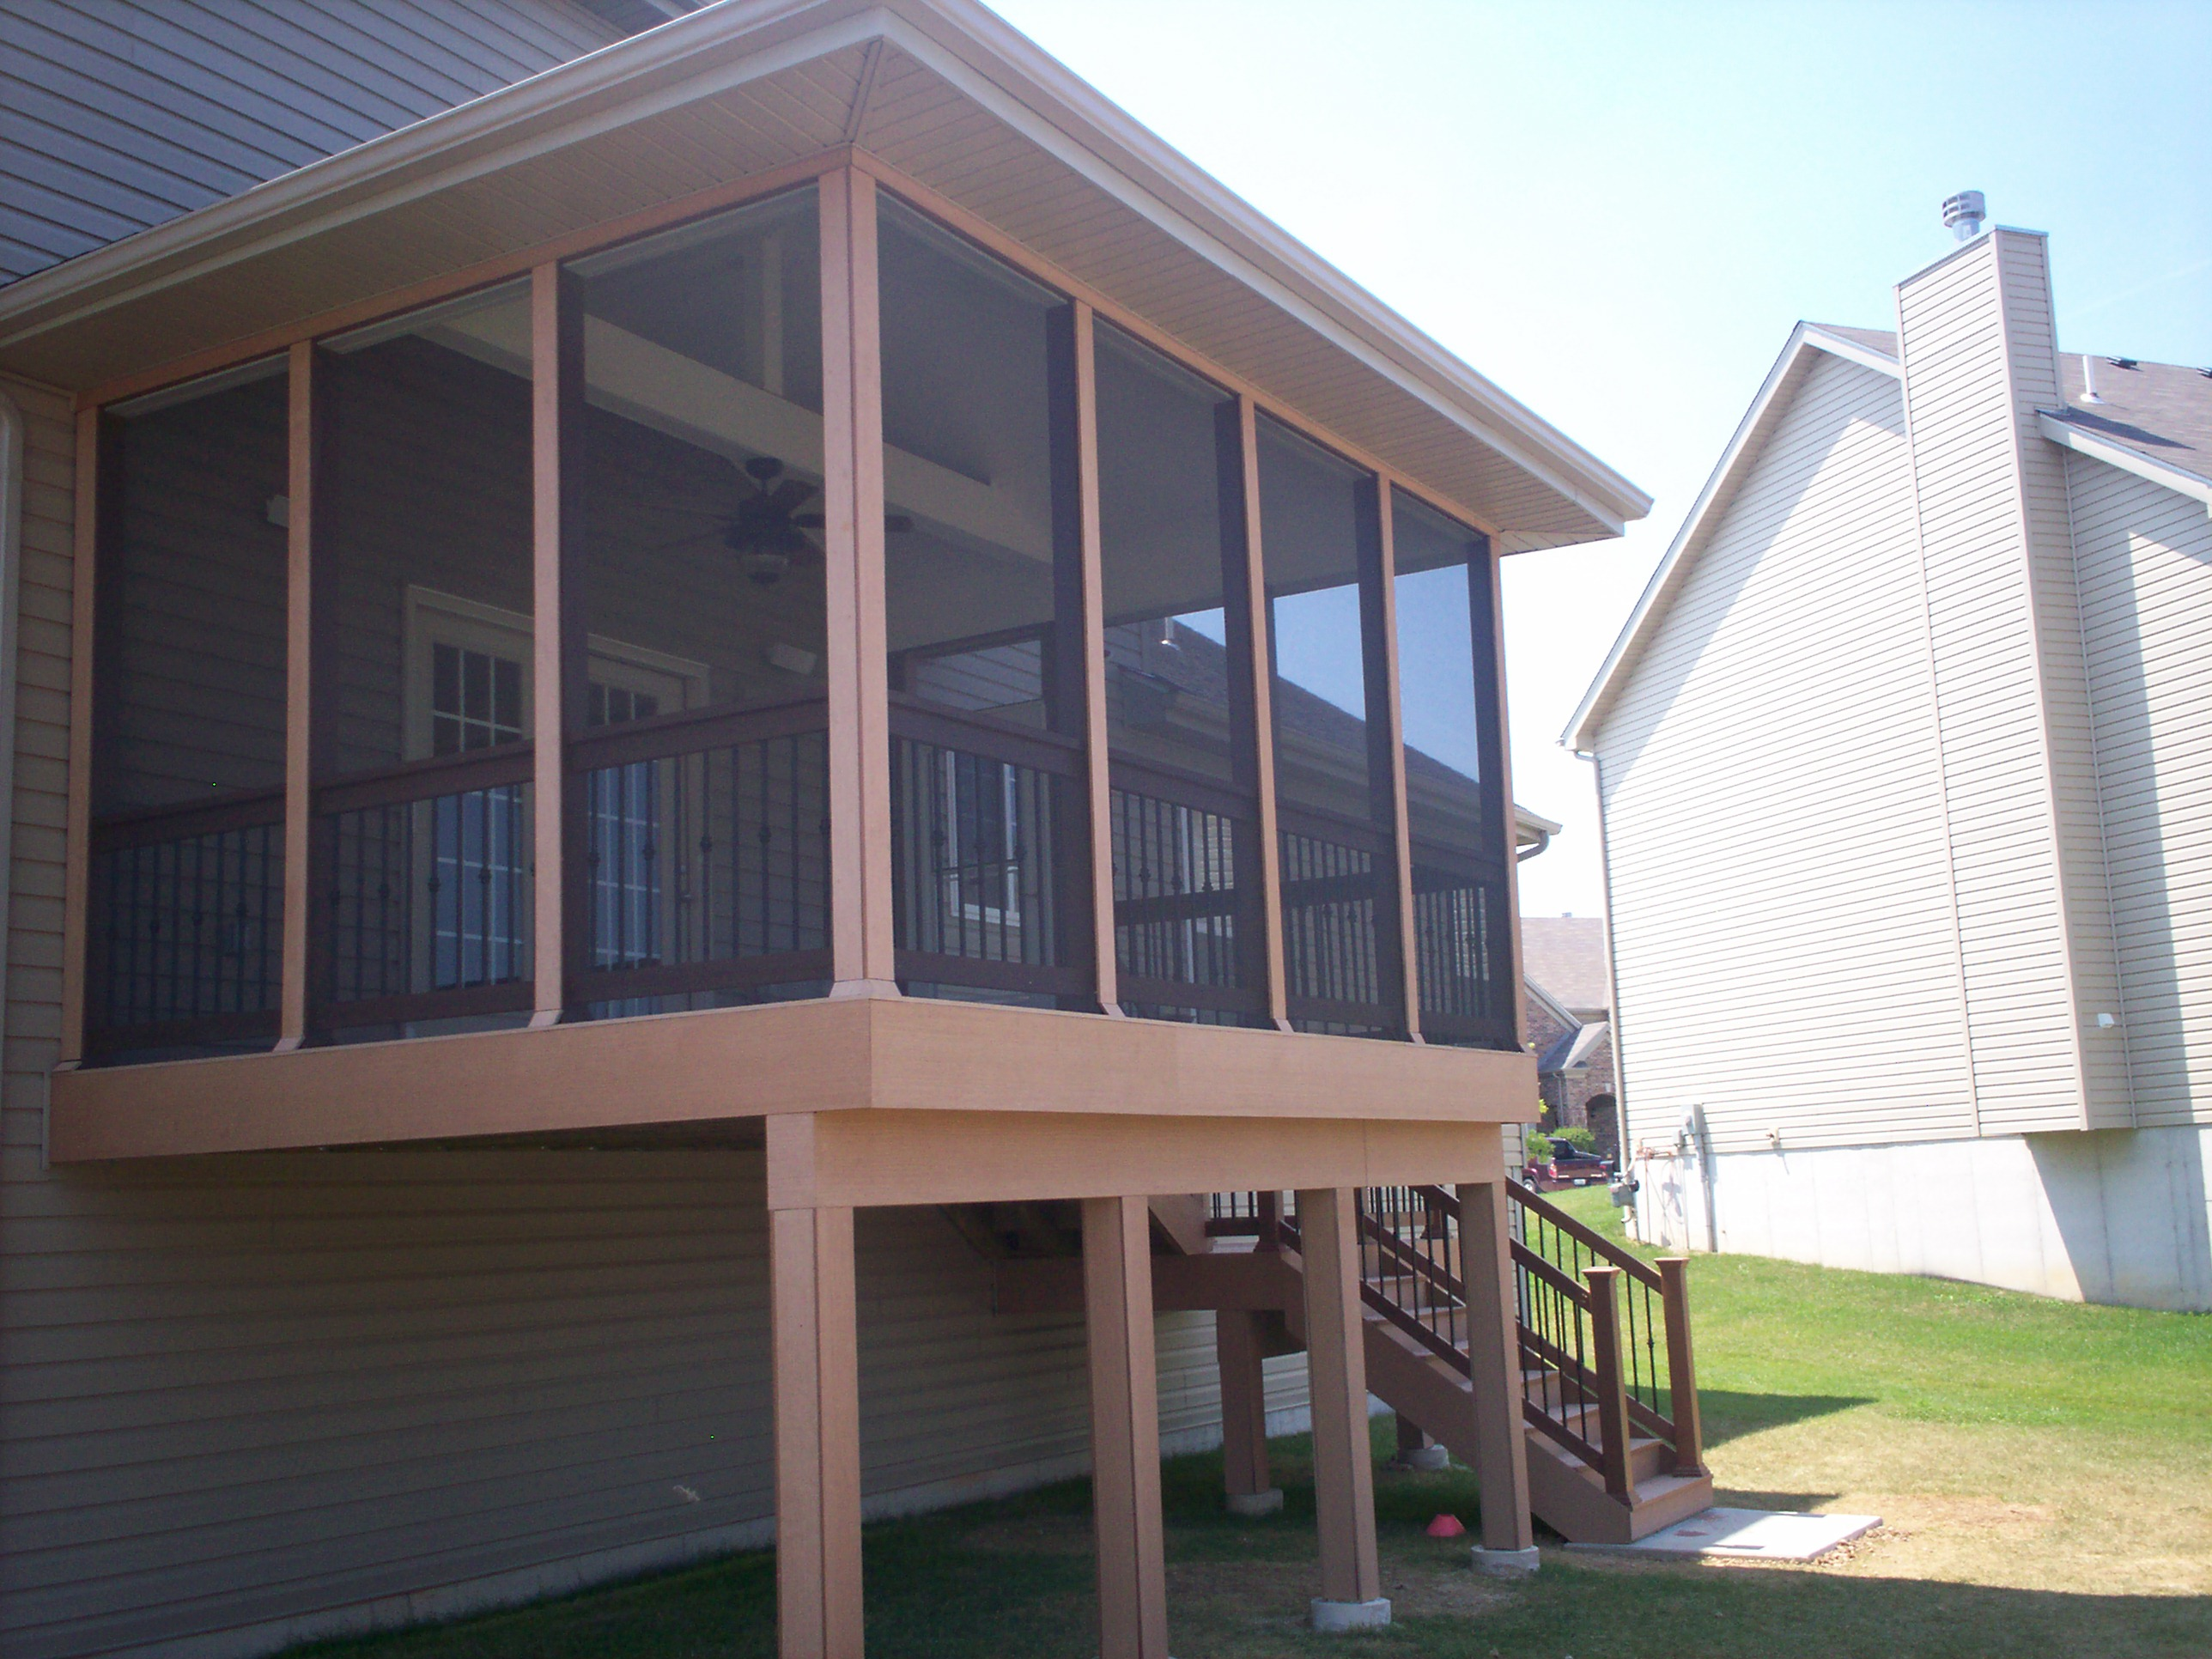 This second story screened porch features composite decking and rails with  black Deckorator aluminum balusters.The open gable roof and wide screen